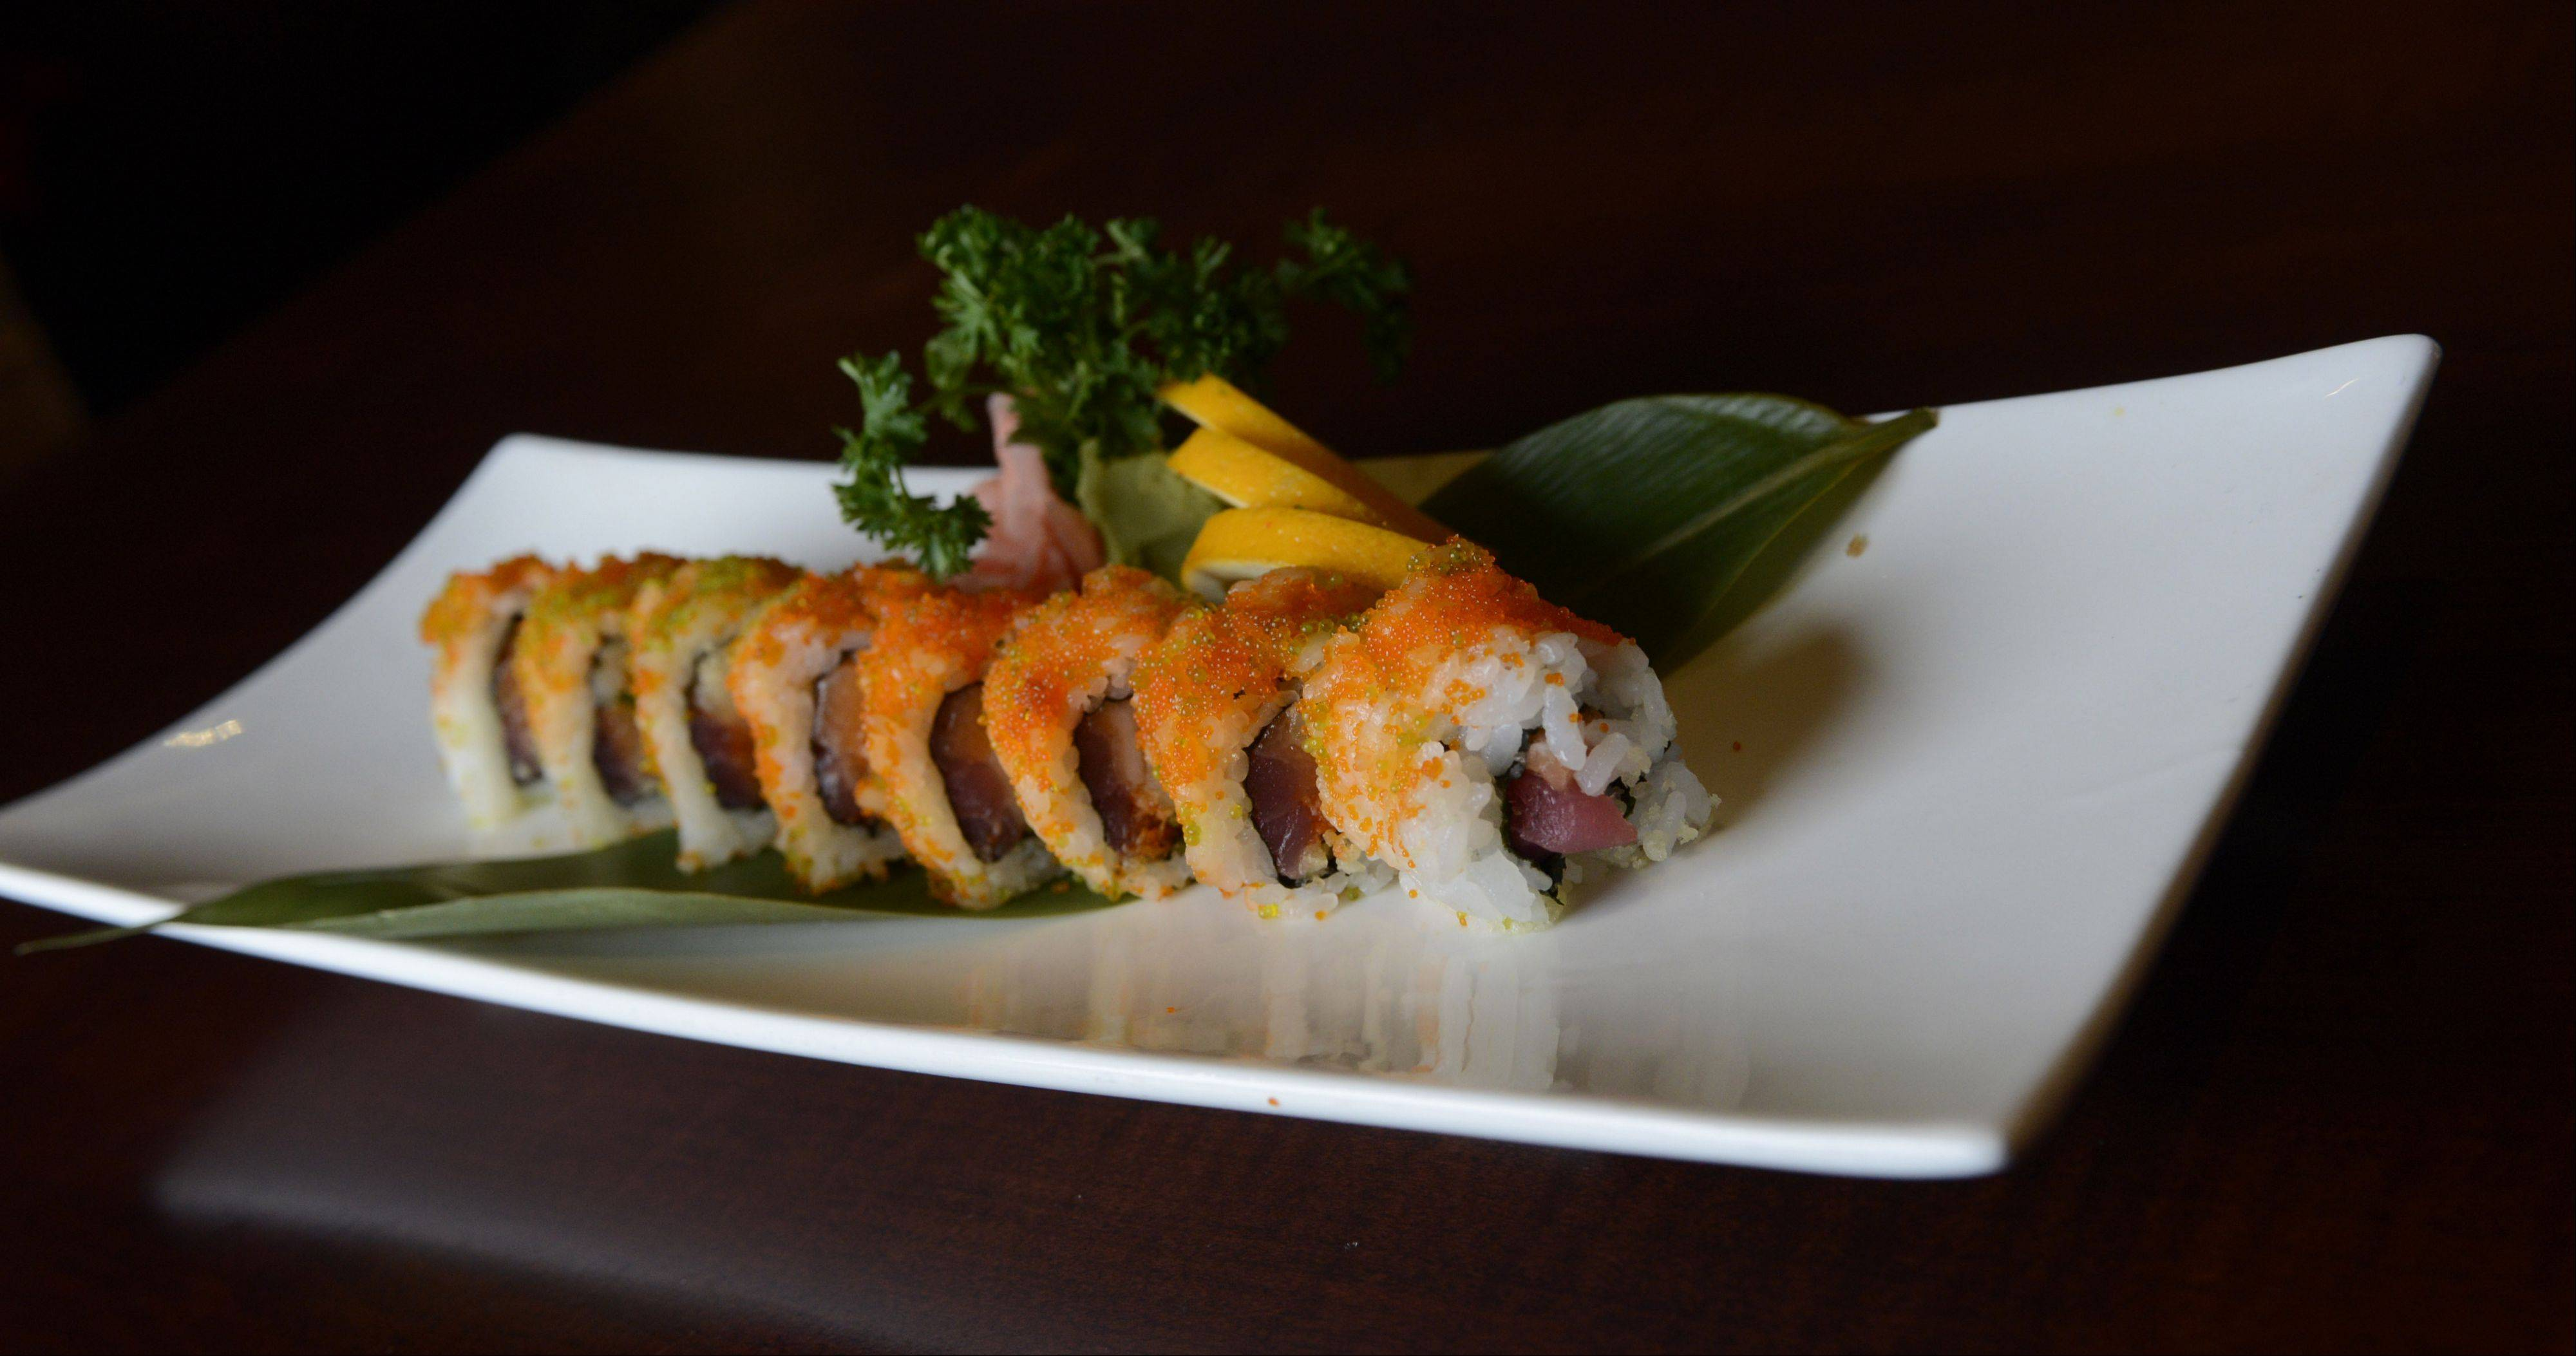 Wok'n Fire's Fantasy roll features tuna, red snapper, Sriracha sauce, scallion, tempura flakes and a sprinkling of orange-colored flying fish roe.